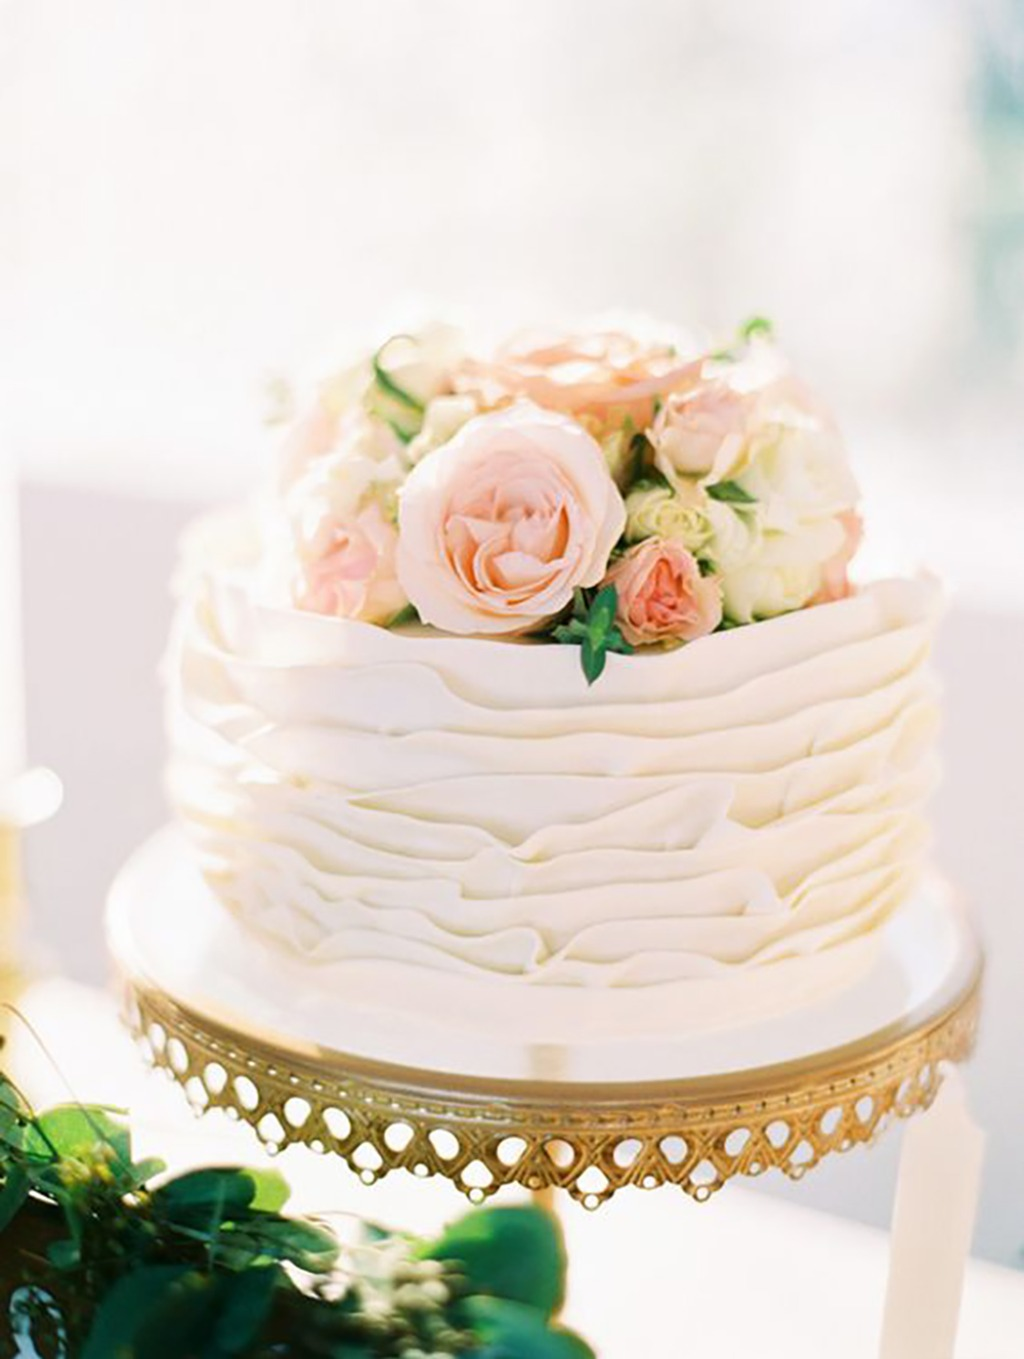 Gorgeous Al Fresco Playa del Carmen Wedding ... Fresh Floral wedding Cake by Pasteleria La Migaja on Opulent Treasures Wedding Cake